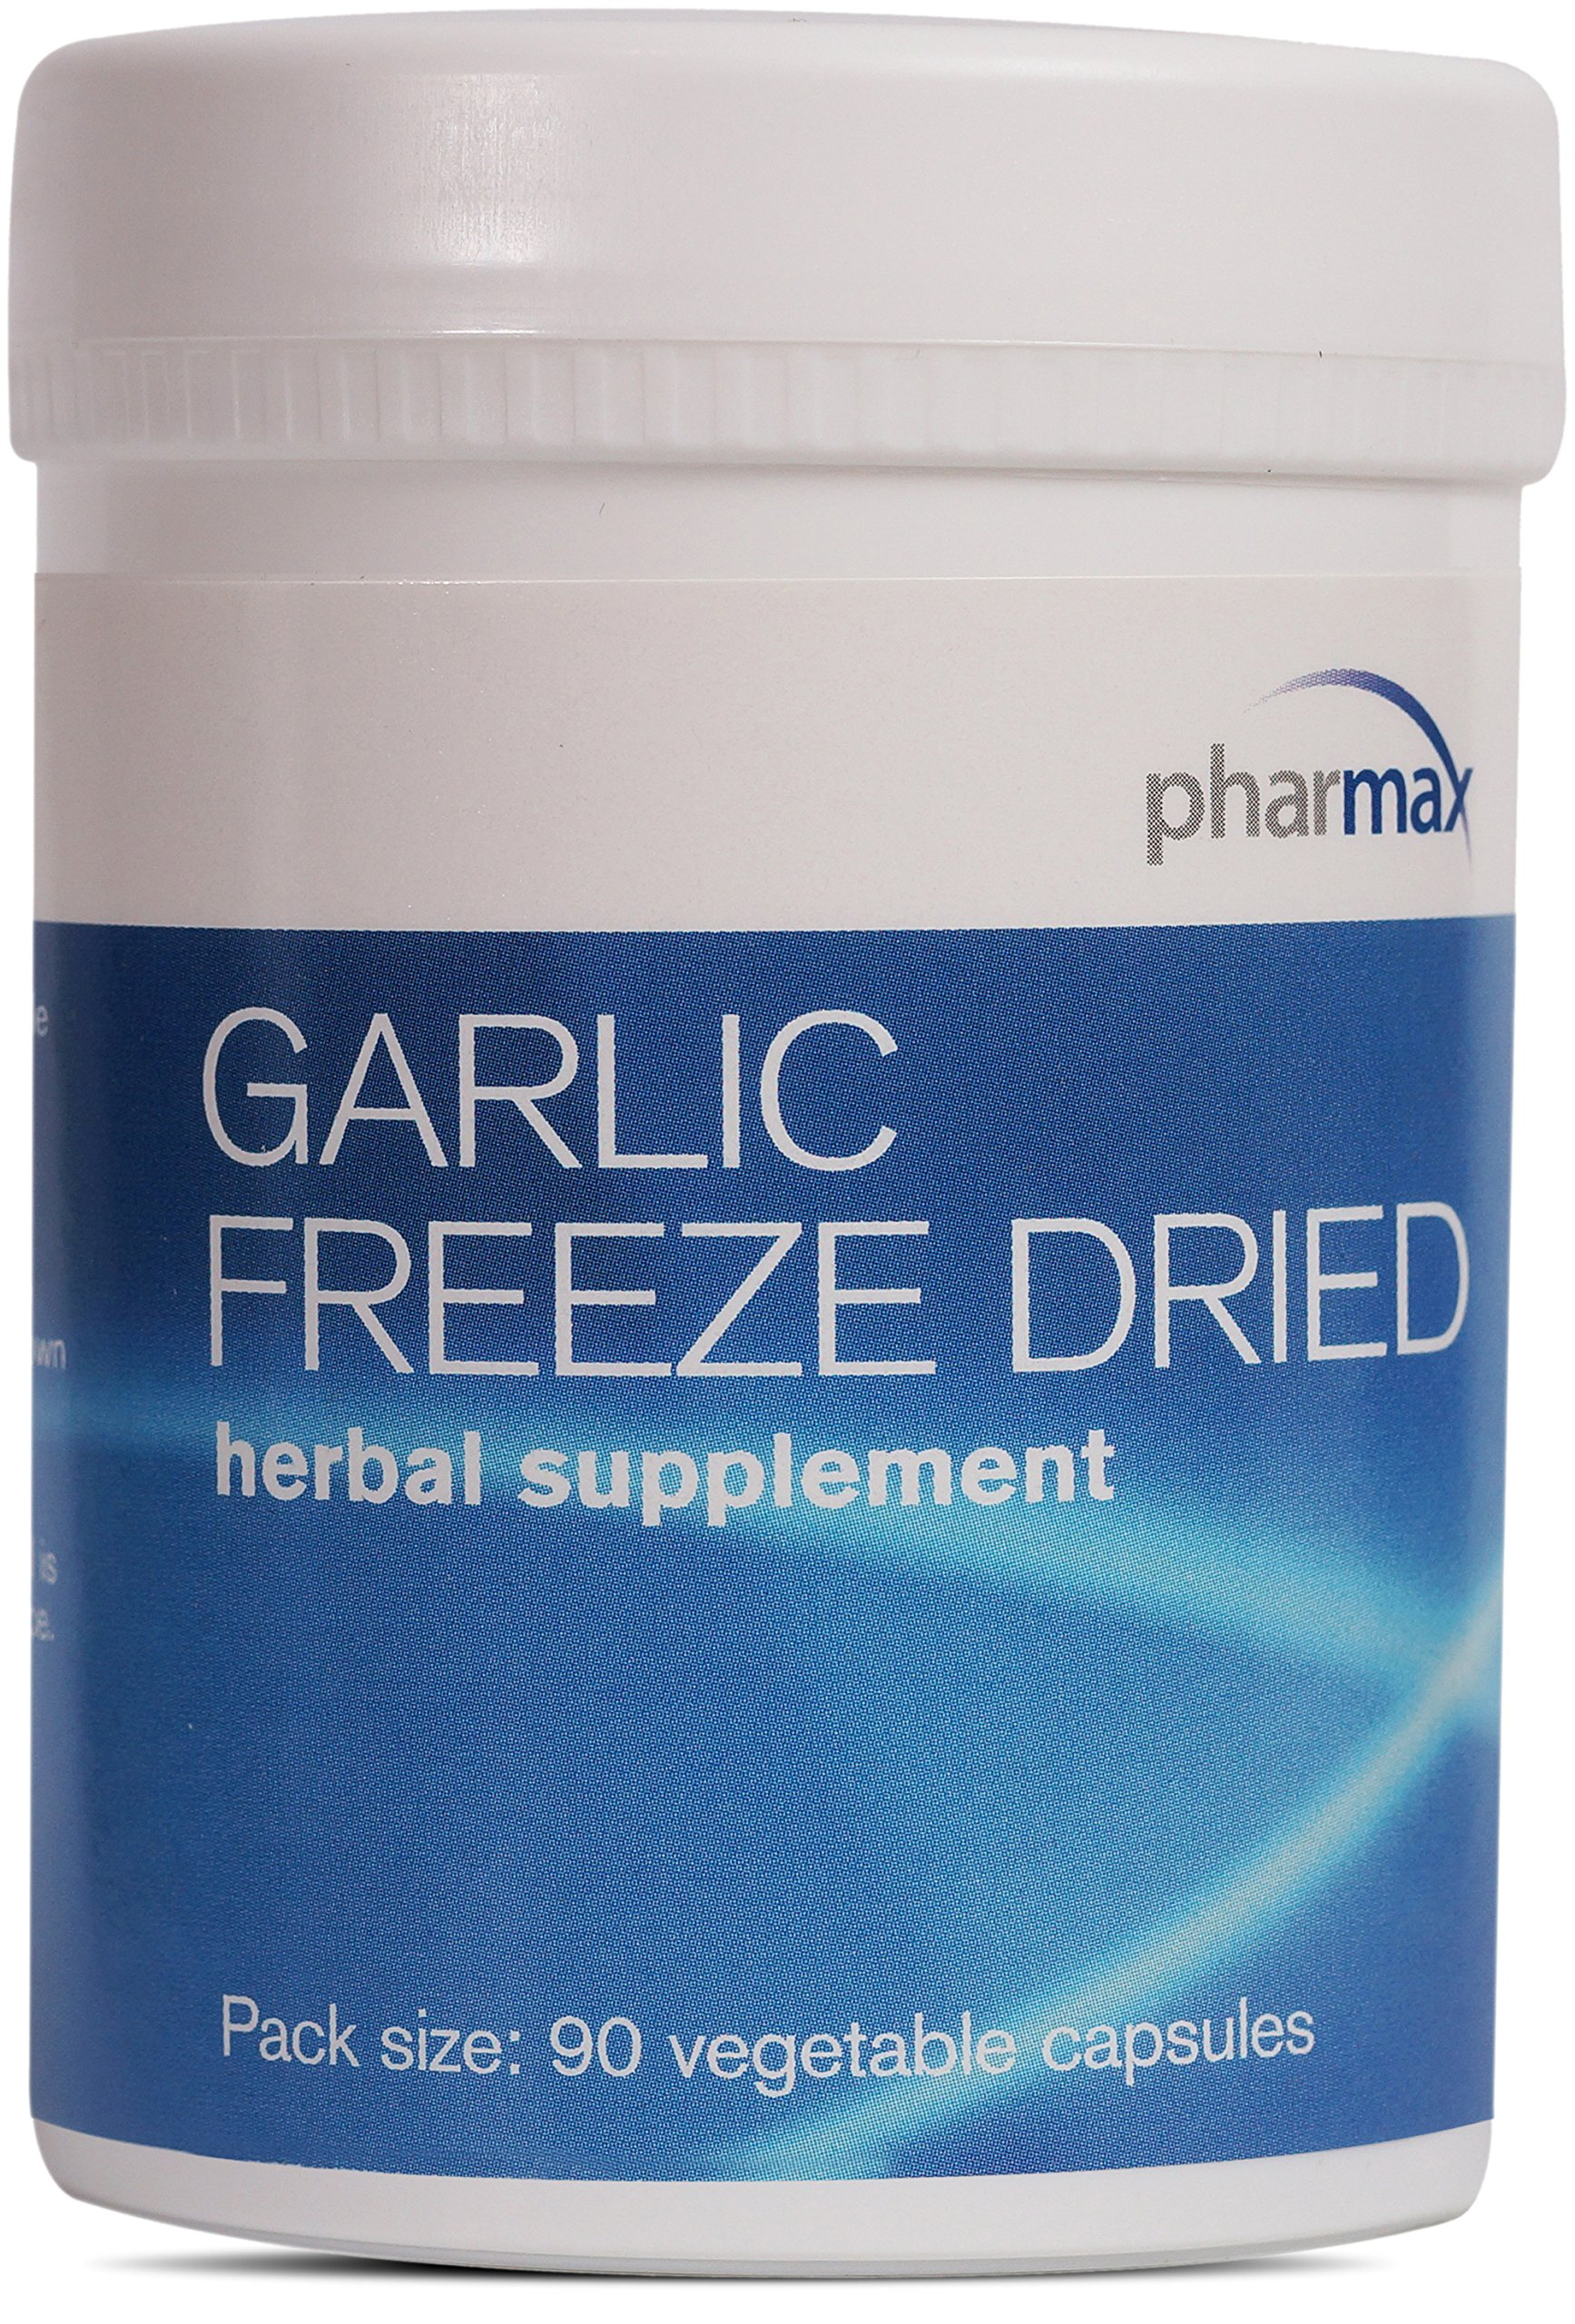 Pharmax - Garlic Freeze Dried - Supports Upper Respiratory Tract and Cardiovascular Health* - 90 Capsules